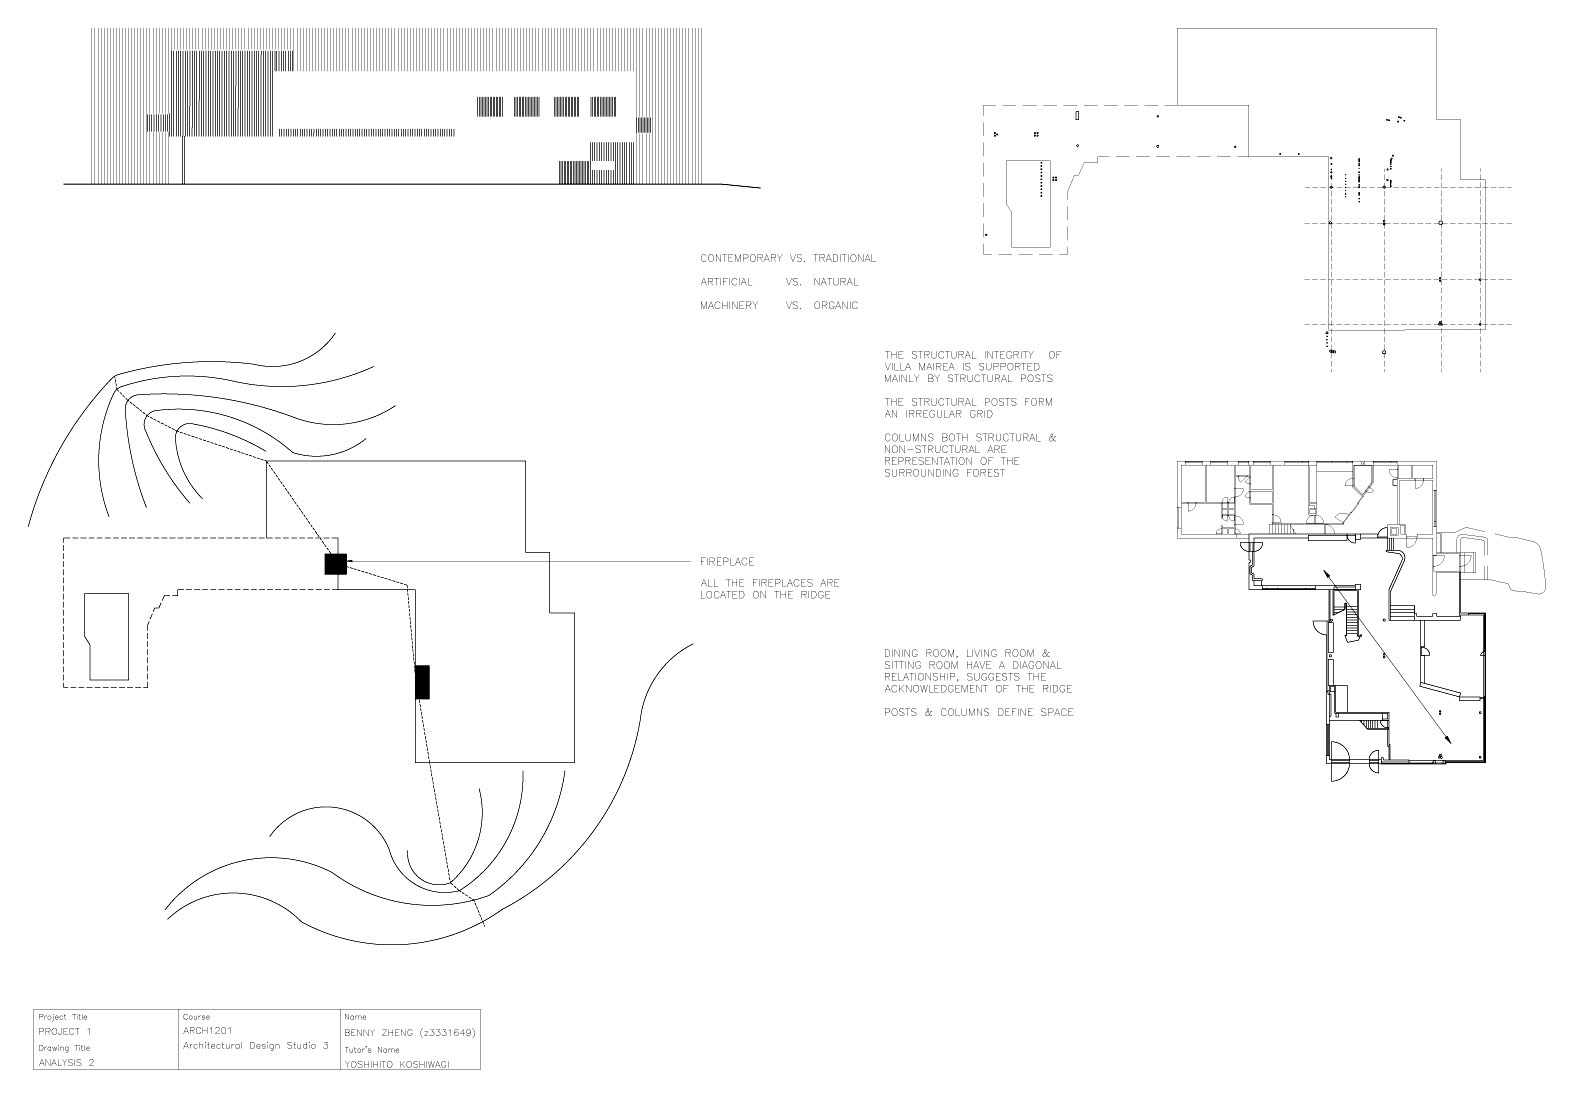 Arch1201: Drawings & Analysis in Relationship Drawings